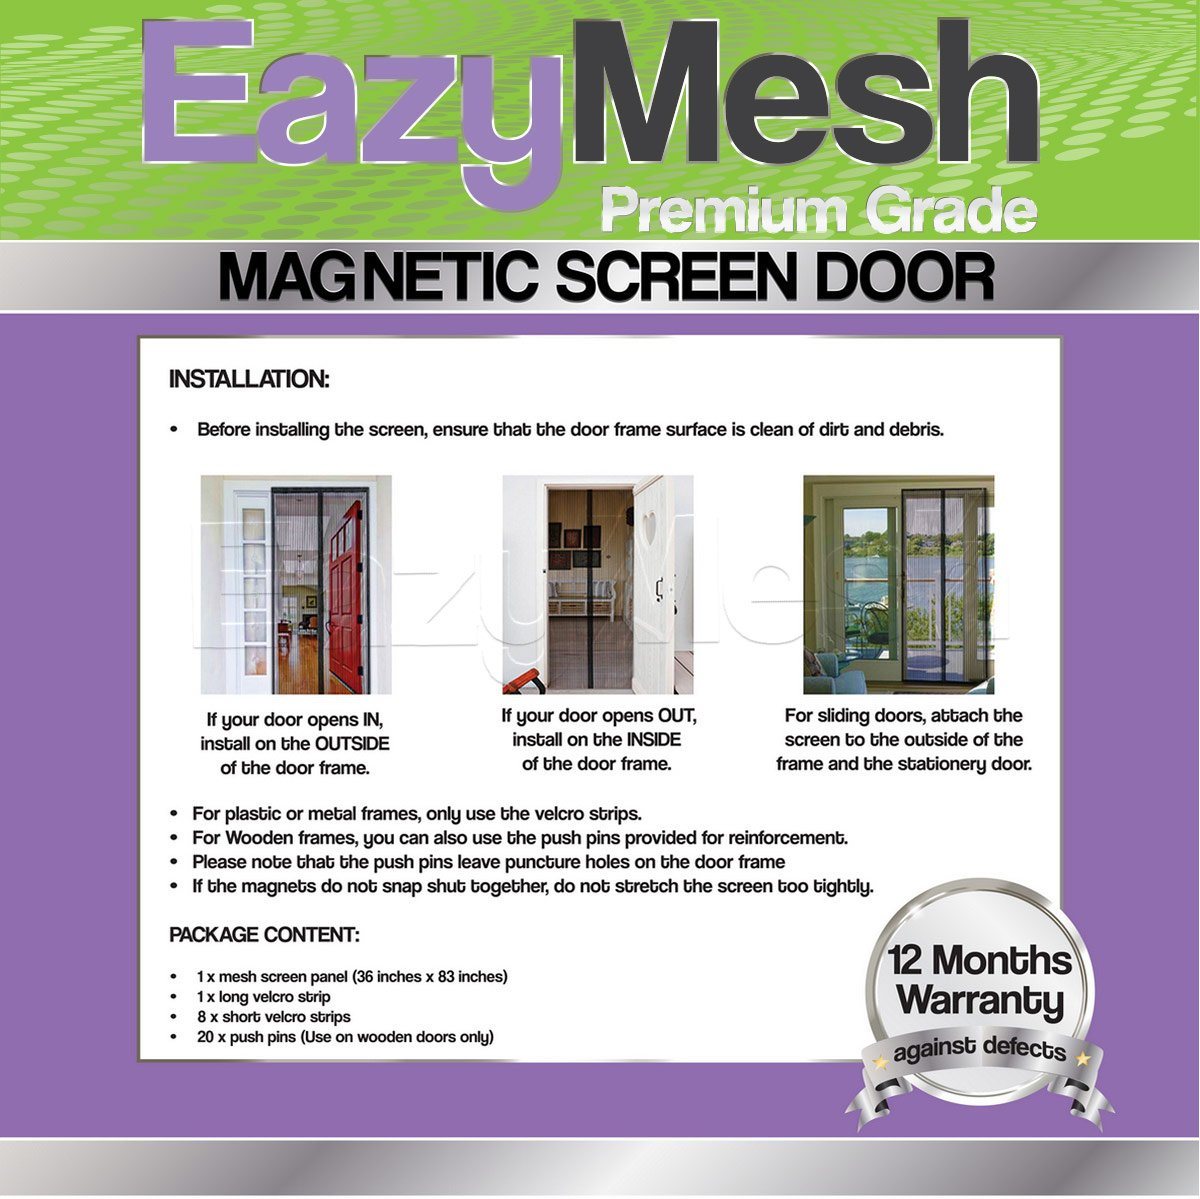 Eazymesh polyester mesh magnetic screen door with full length sewn eazymesh polyester mesh magnetic screen door with full length sewn in velcro seals 36 x 83 inches amazon vtopaller Image collections